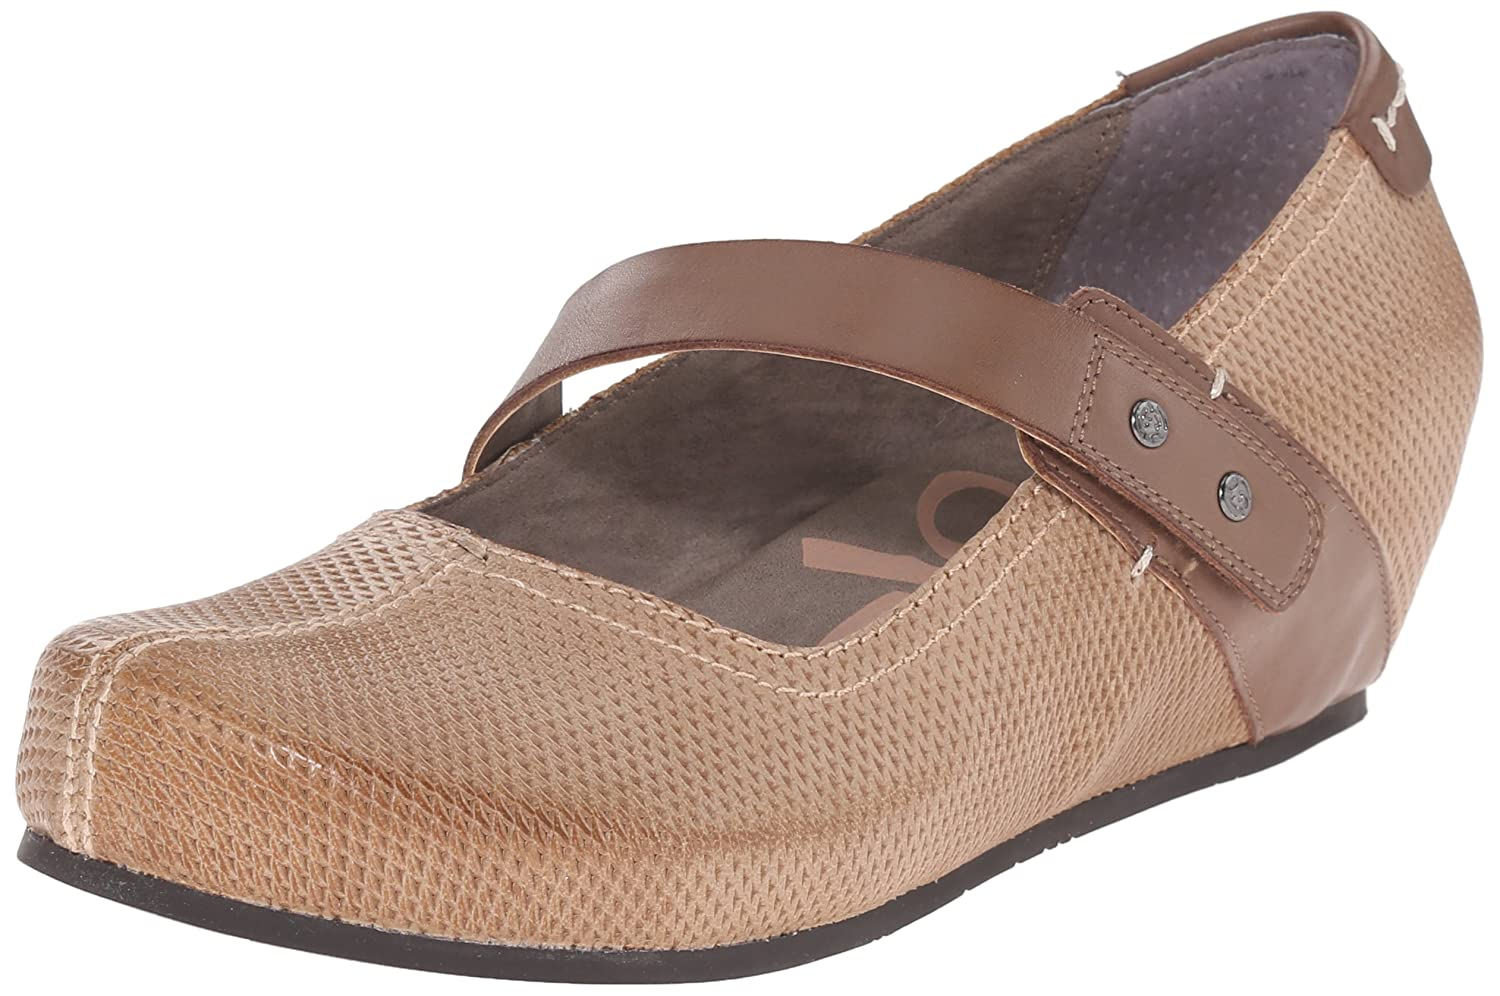 OTBT Women's Salem Mary Jane Flat B017AJ0B52 7.5 B(M) US|Hickory Brown